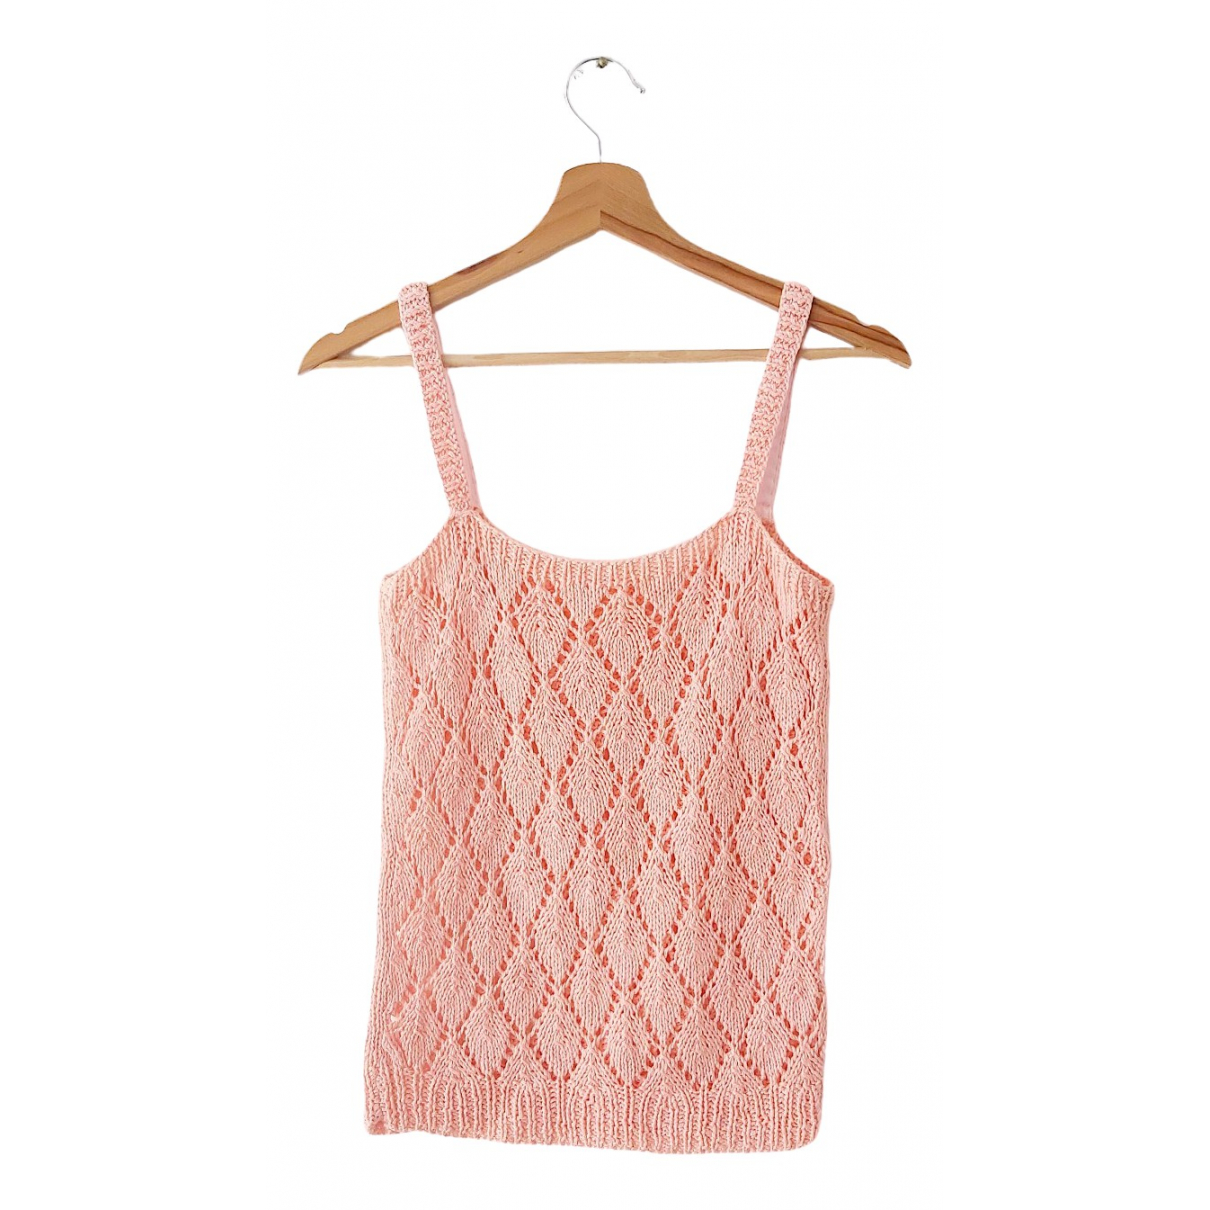 Non Signe / Unsigned Hippie Chic Top in  Rosa Baumwolle